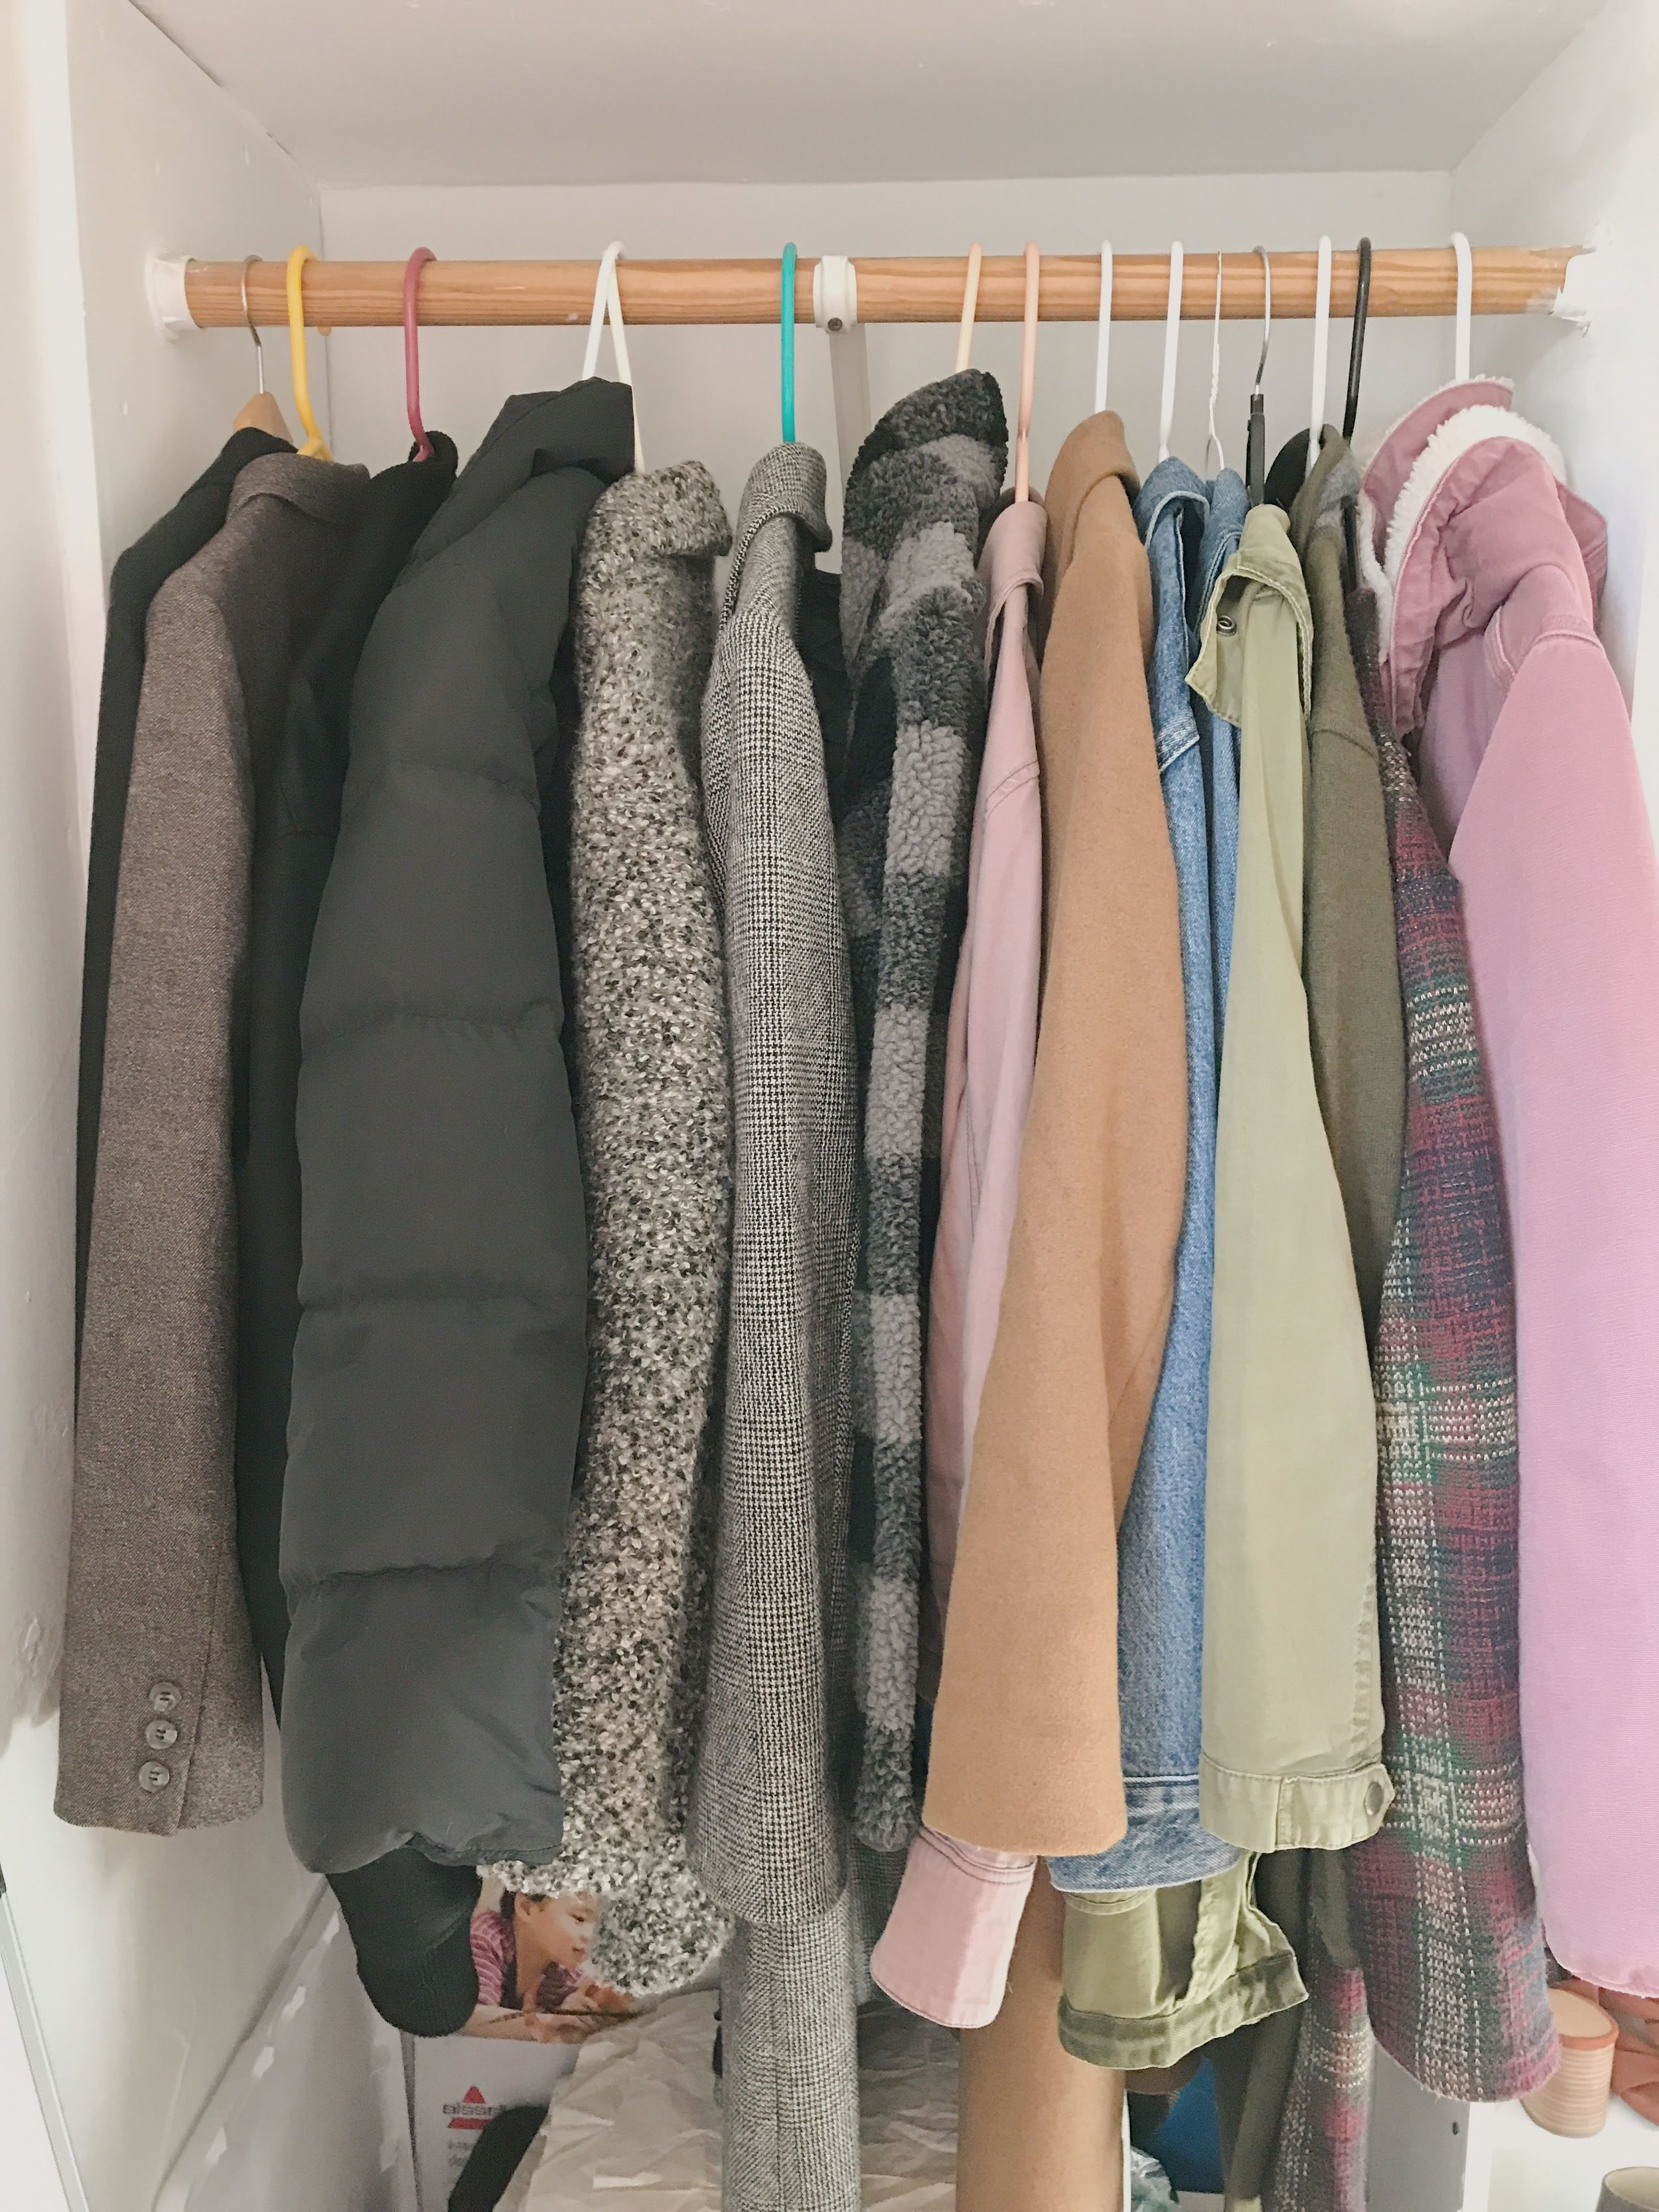 My whole outerwear collection just minus one heavy winter coat!